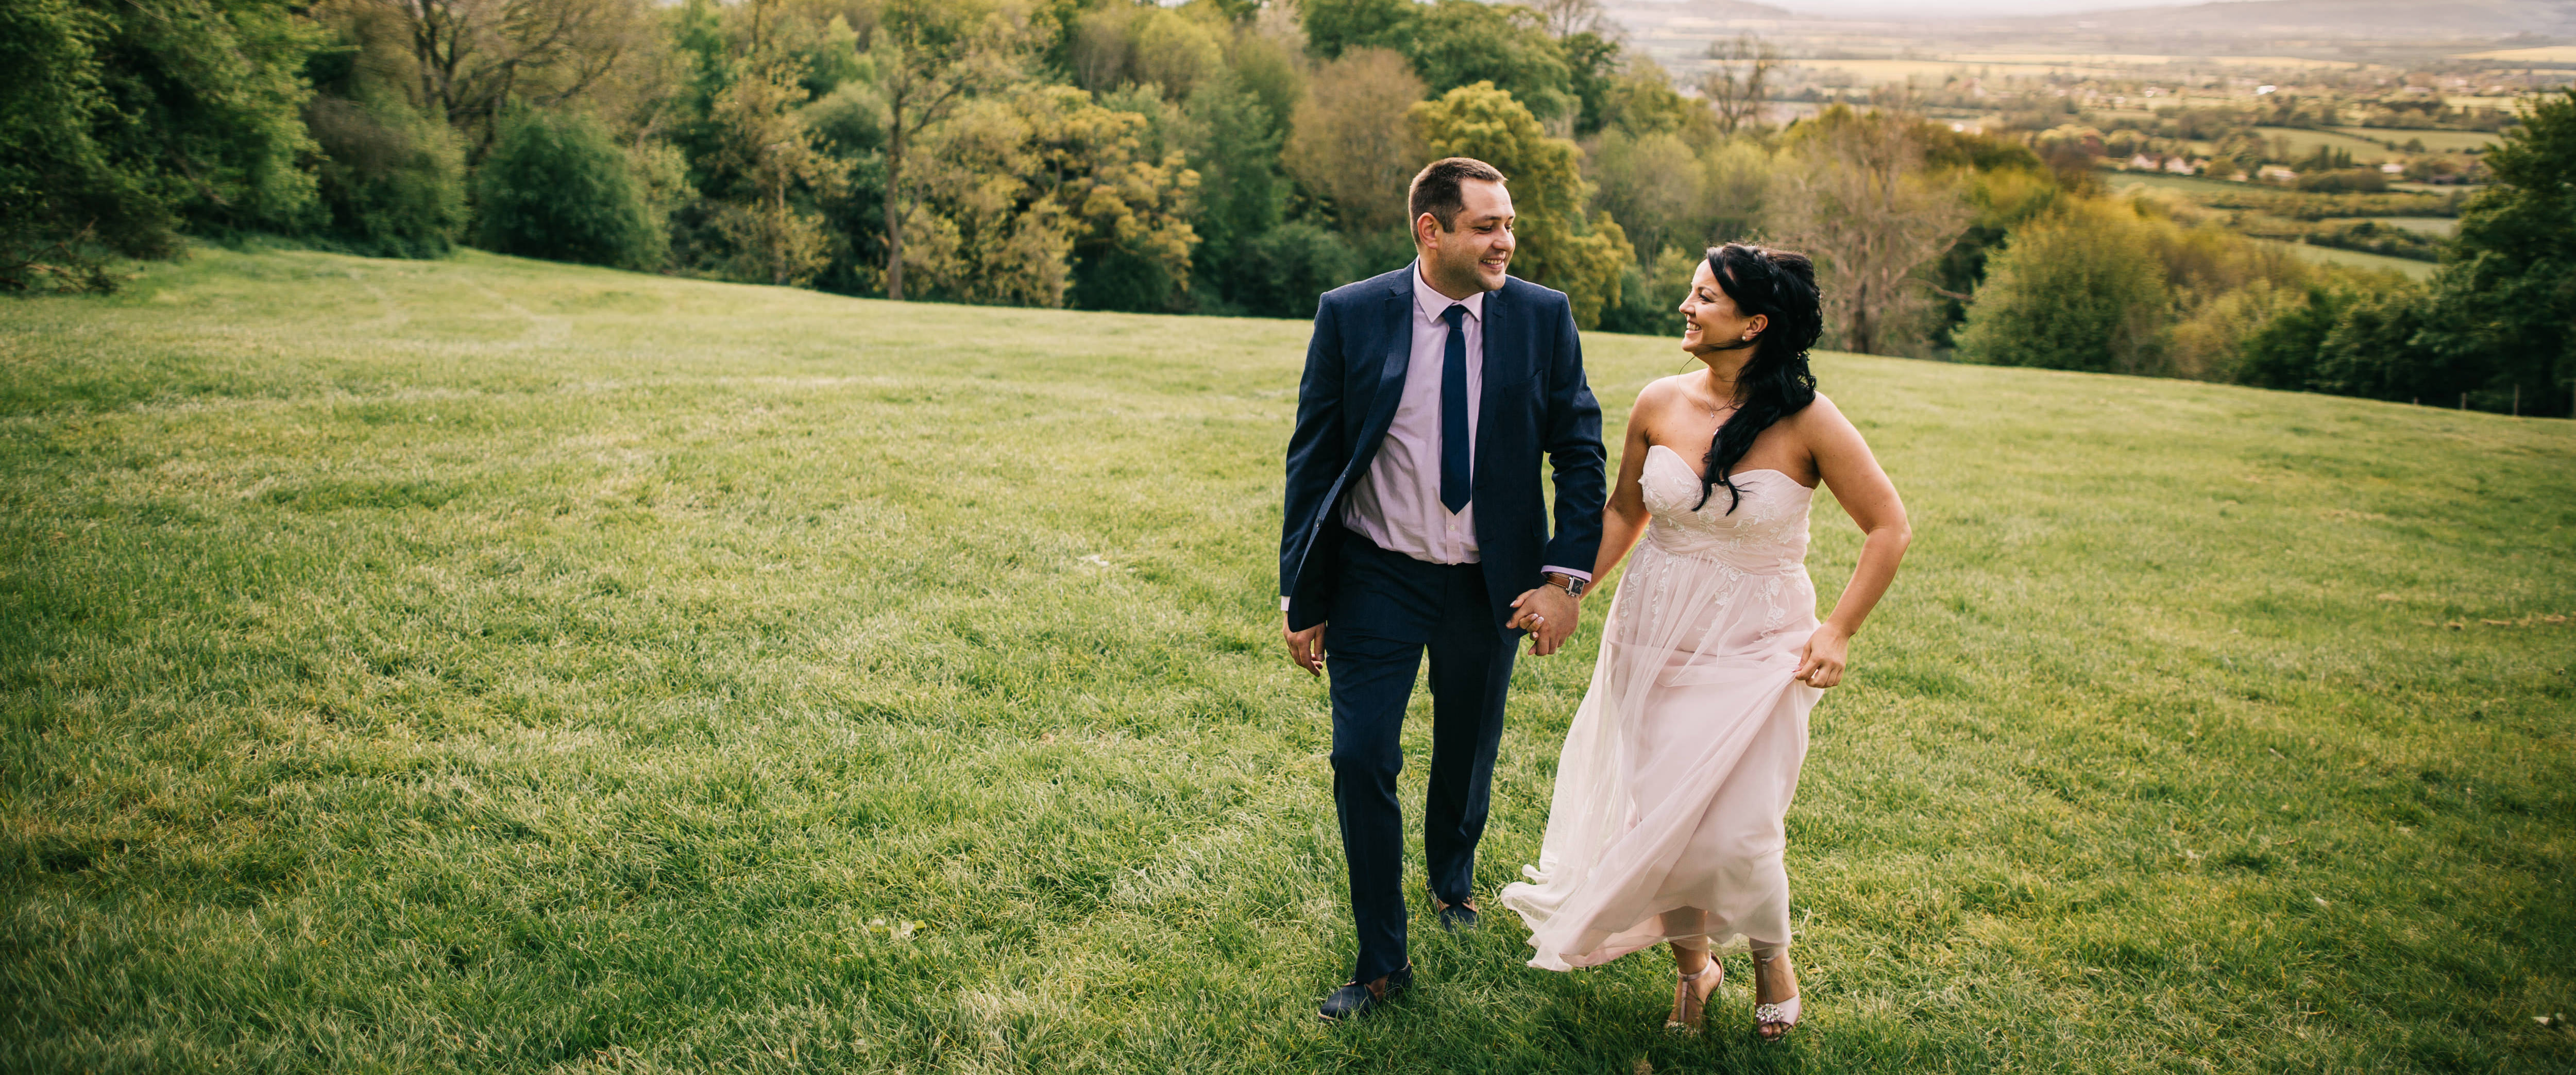 Wedding Photography Prices for couple getting married in cotswolds